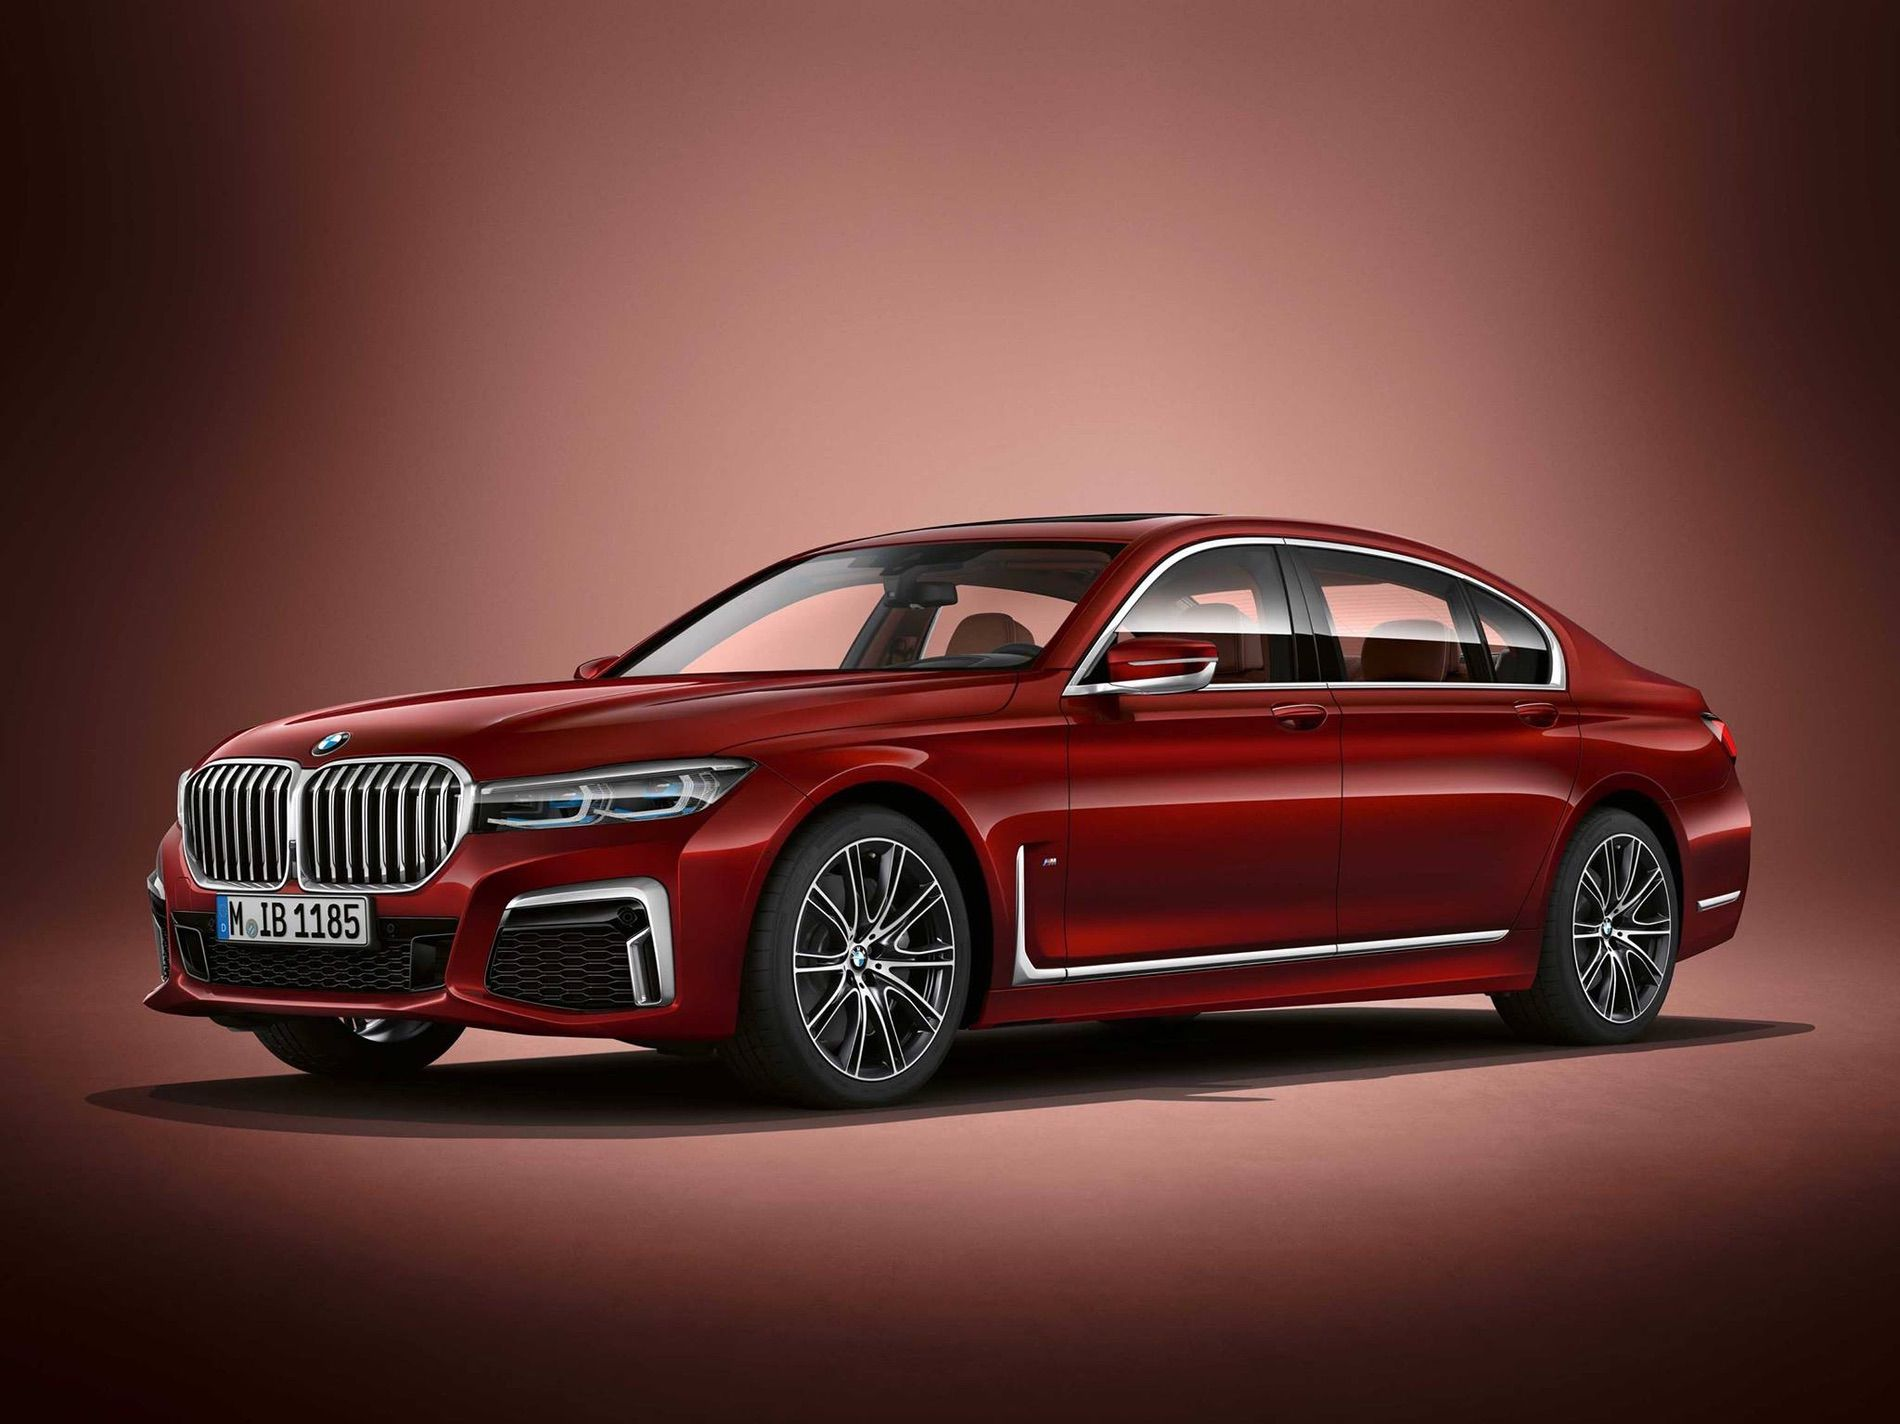 Designer Alexey Kheza explains the BMW 7 Series LCI facelift